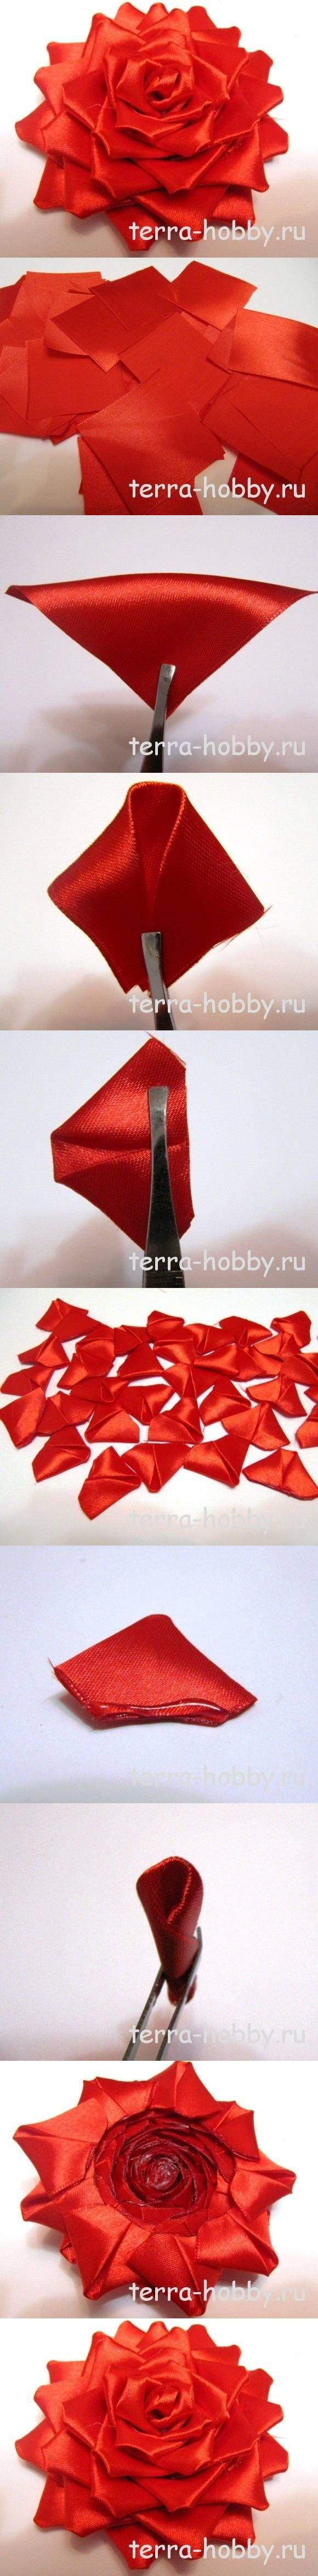 DIY Elegant Ribbon Rose for Wedding DIY Projects